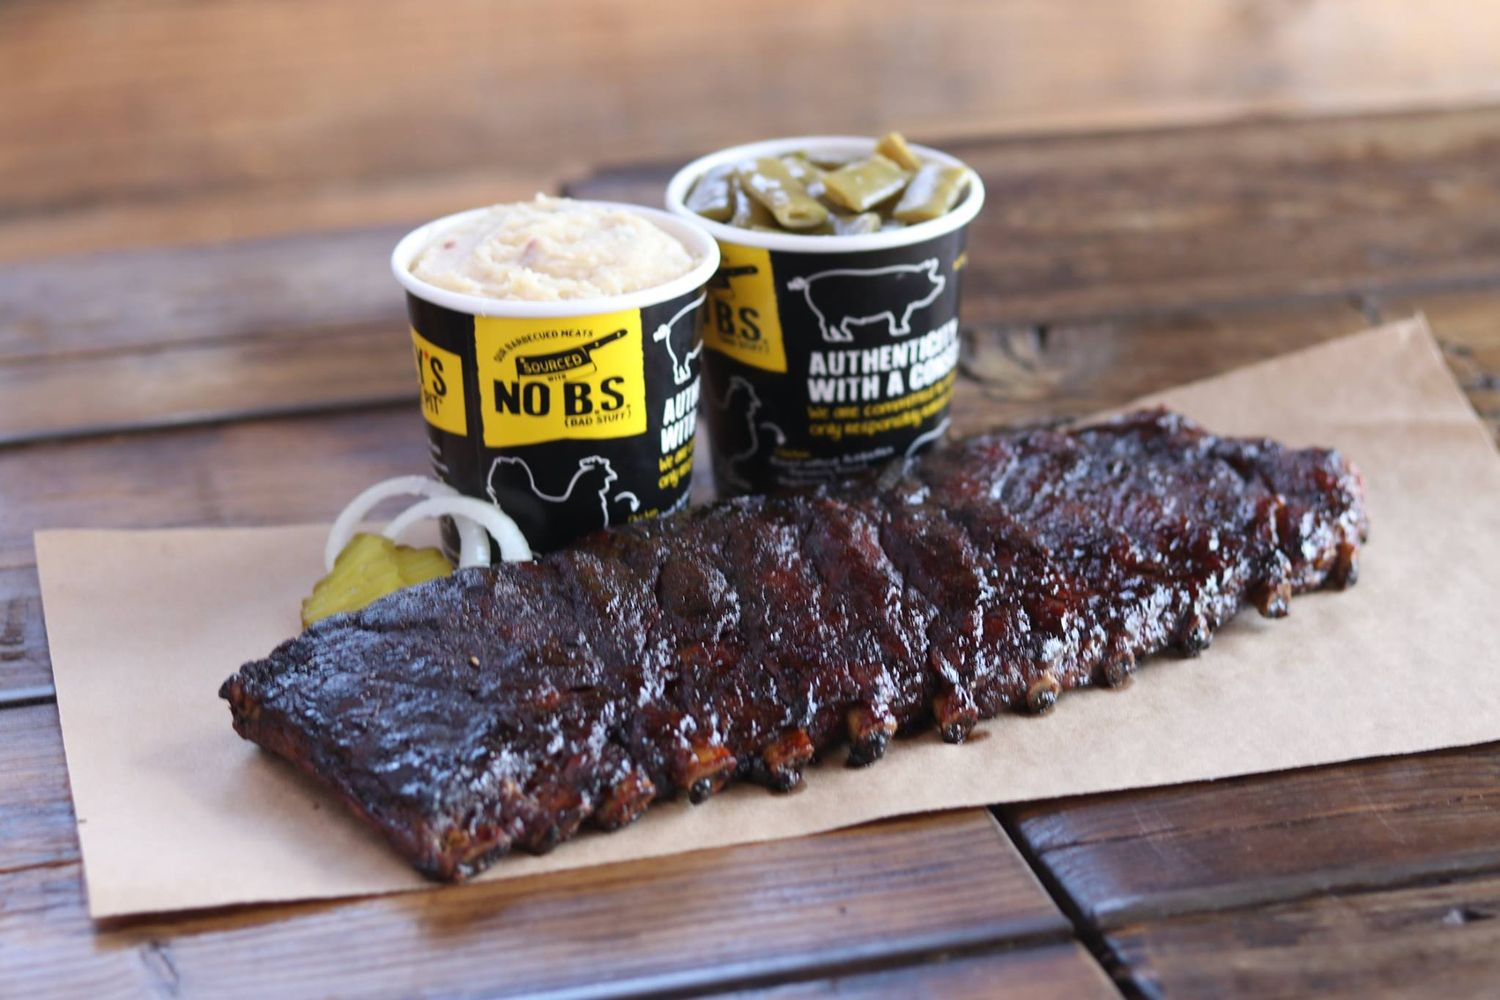 Local Entrepreneur Brings Dickey's Barbecue Pit to Mabank